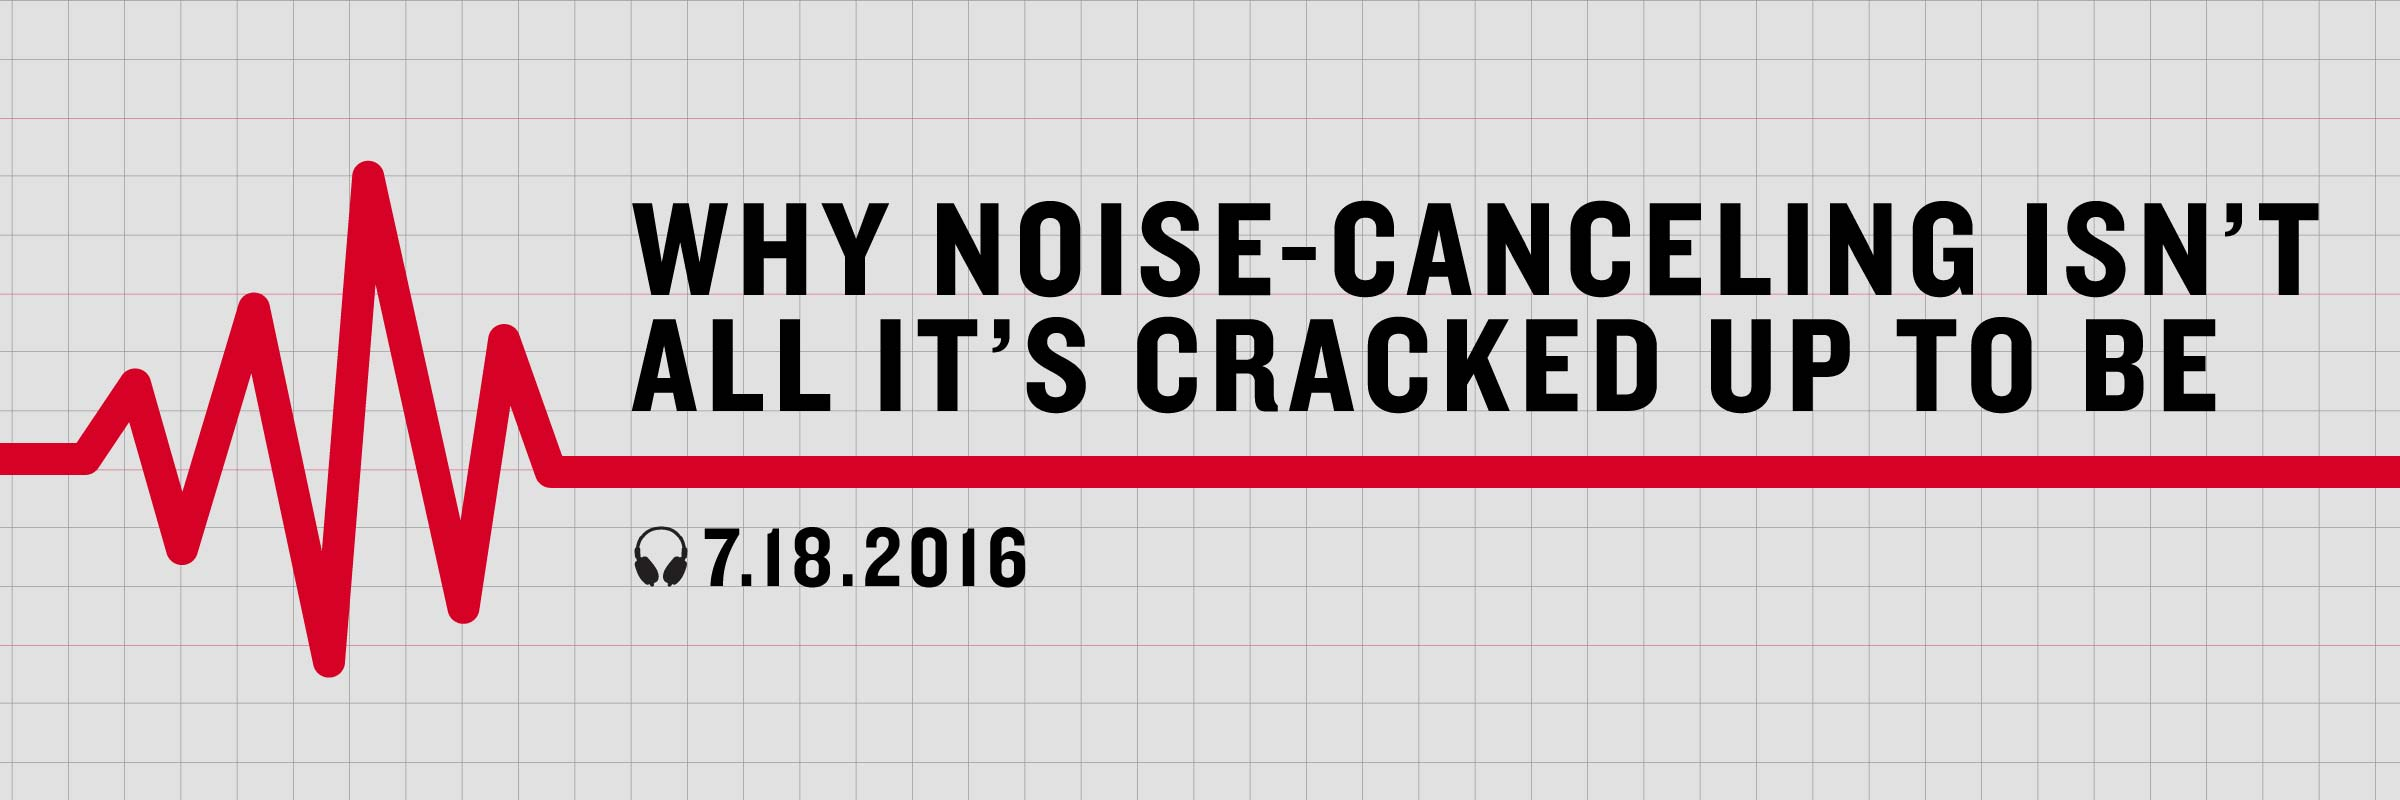 Why Noise-Cancellation Isn't All It's Cracked Up To Be